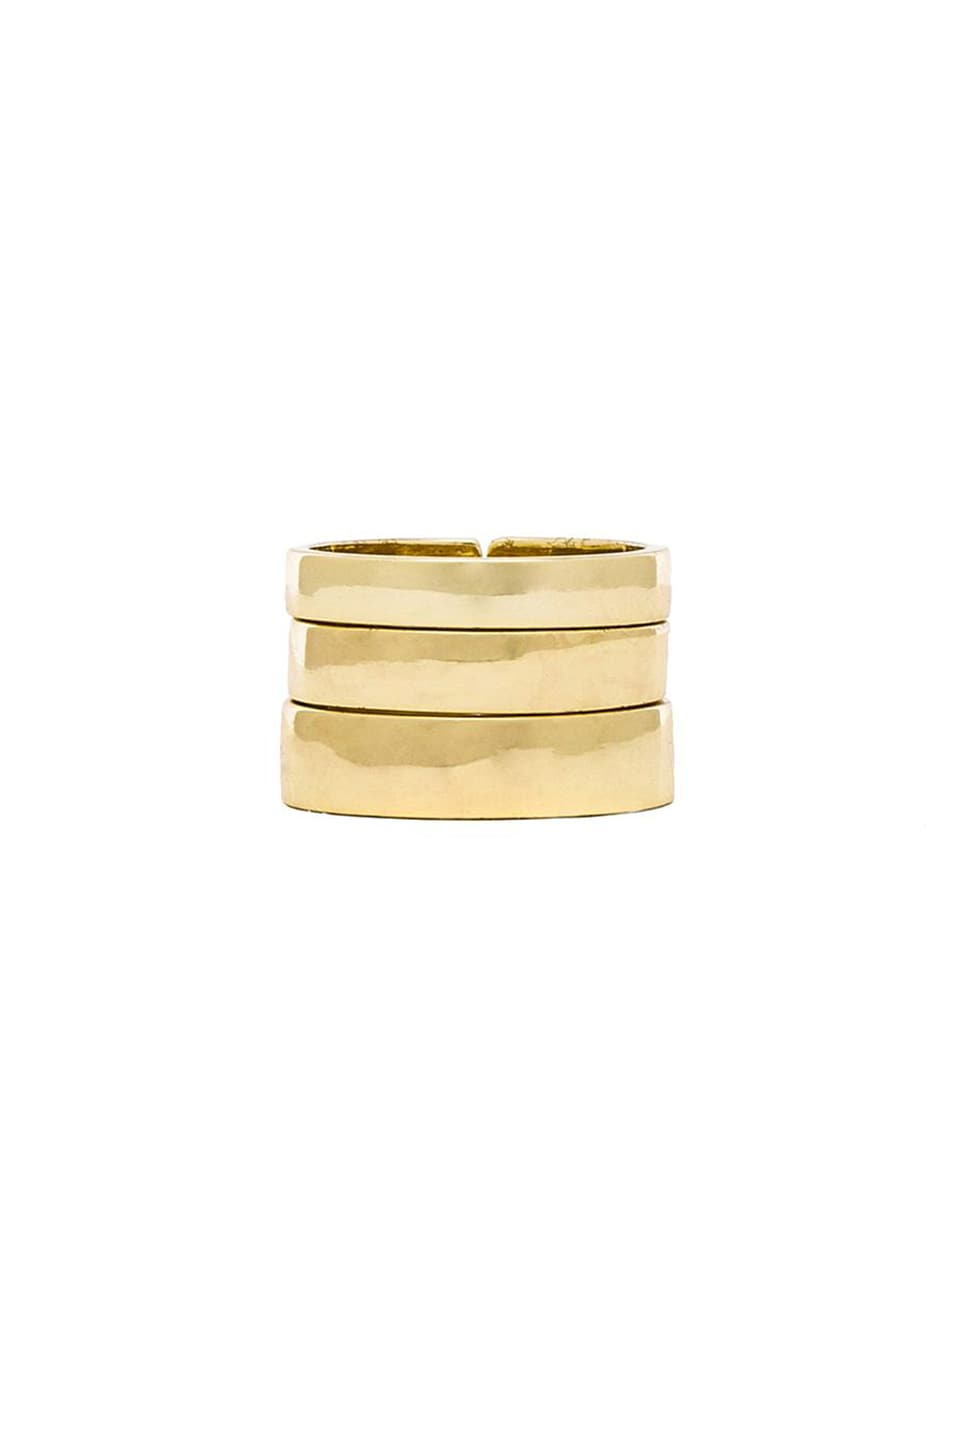 Lisa Freede Set of 3 Rings in Gold